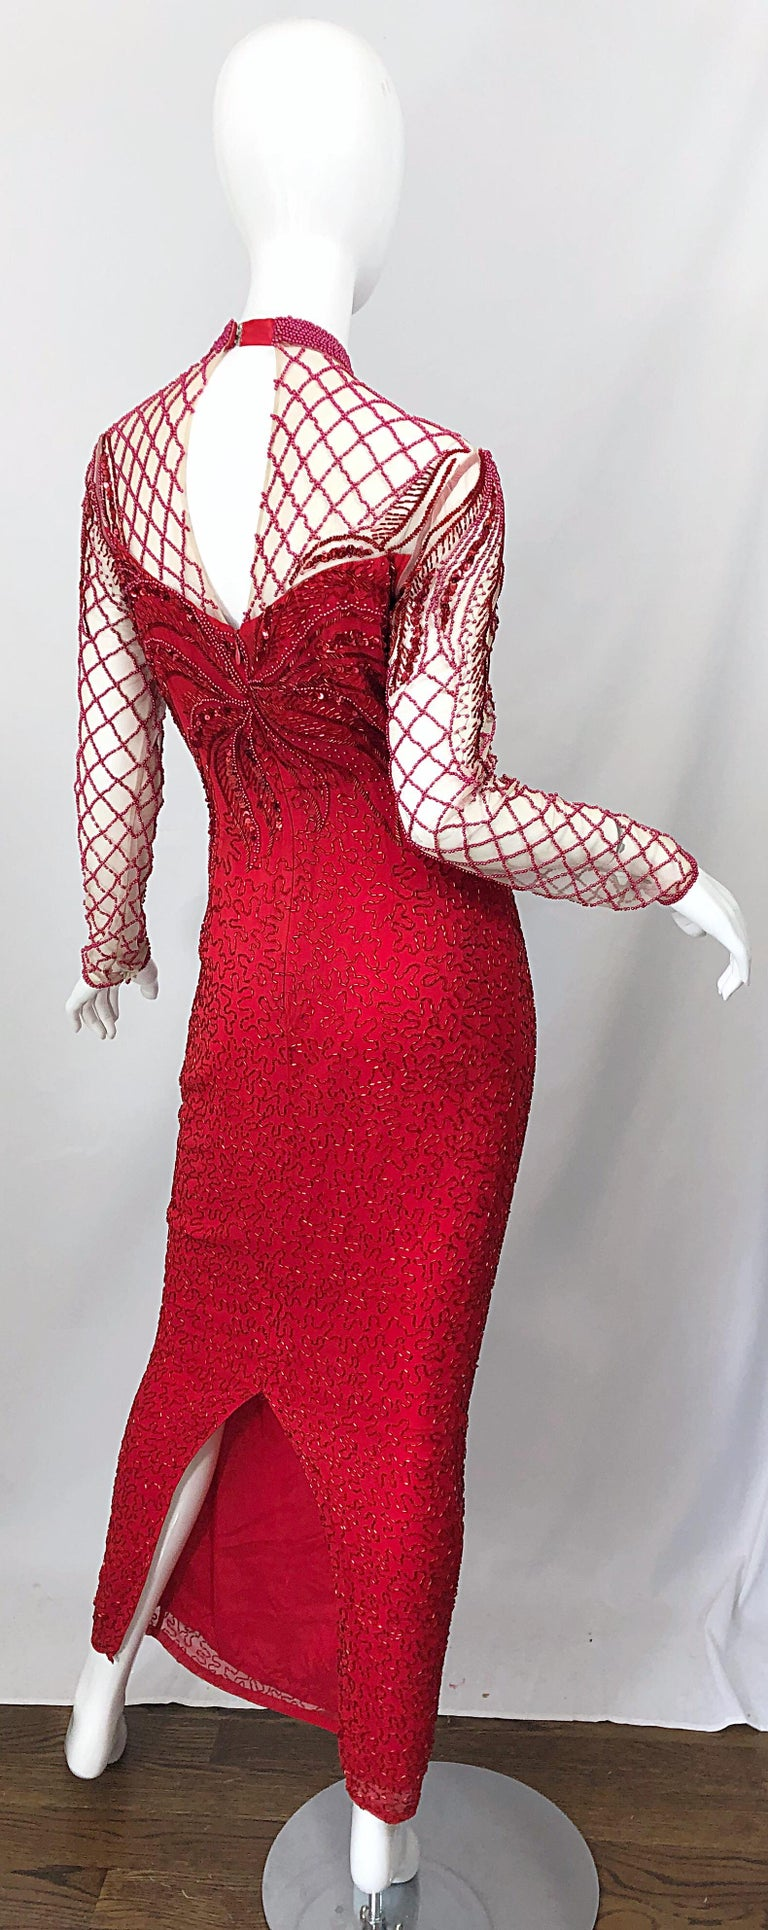 Vintage Oleg Cassini 1990s Lipstick Red Beaded Silk Chiffon 90s Evening Gown For Sale 5